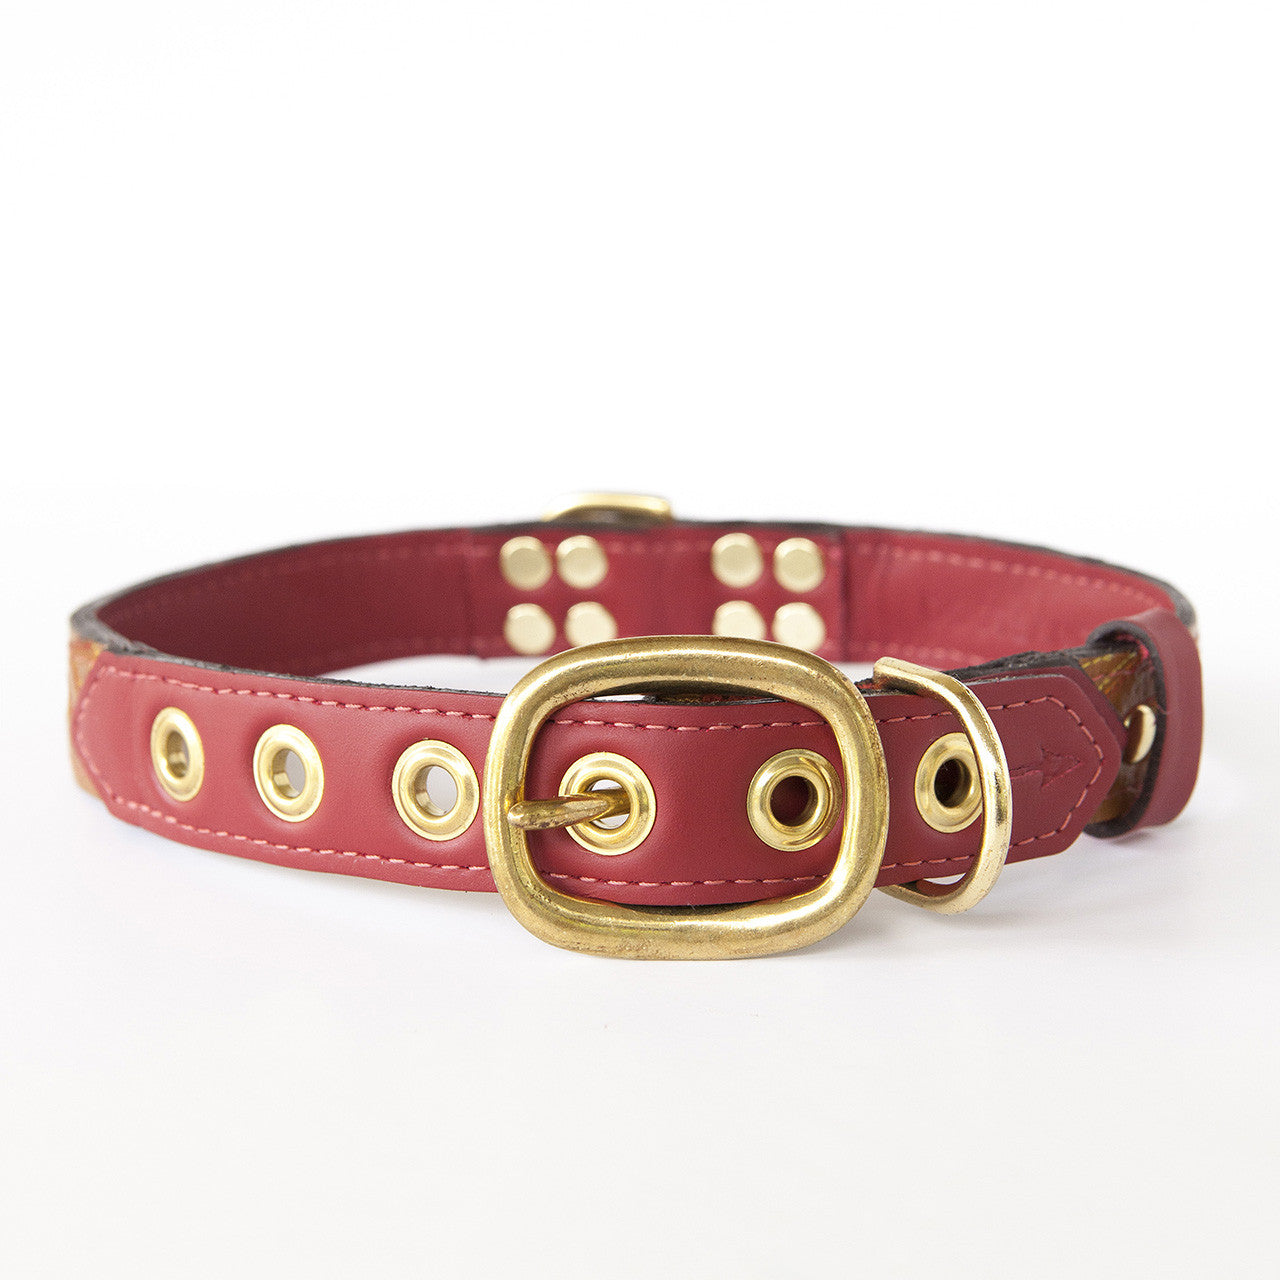 Ruby Red Dog Collar with Brown Leather + Multicolor Stitching (back view)